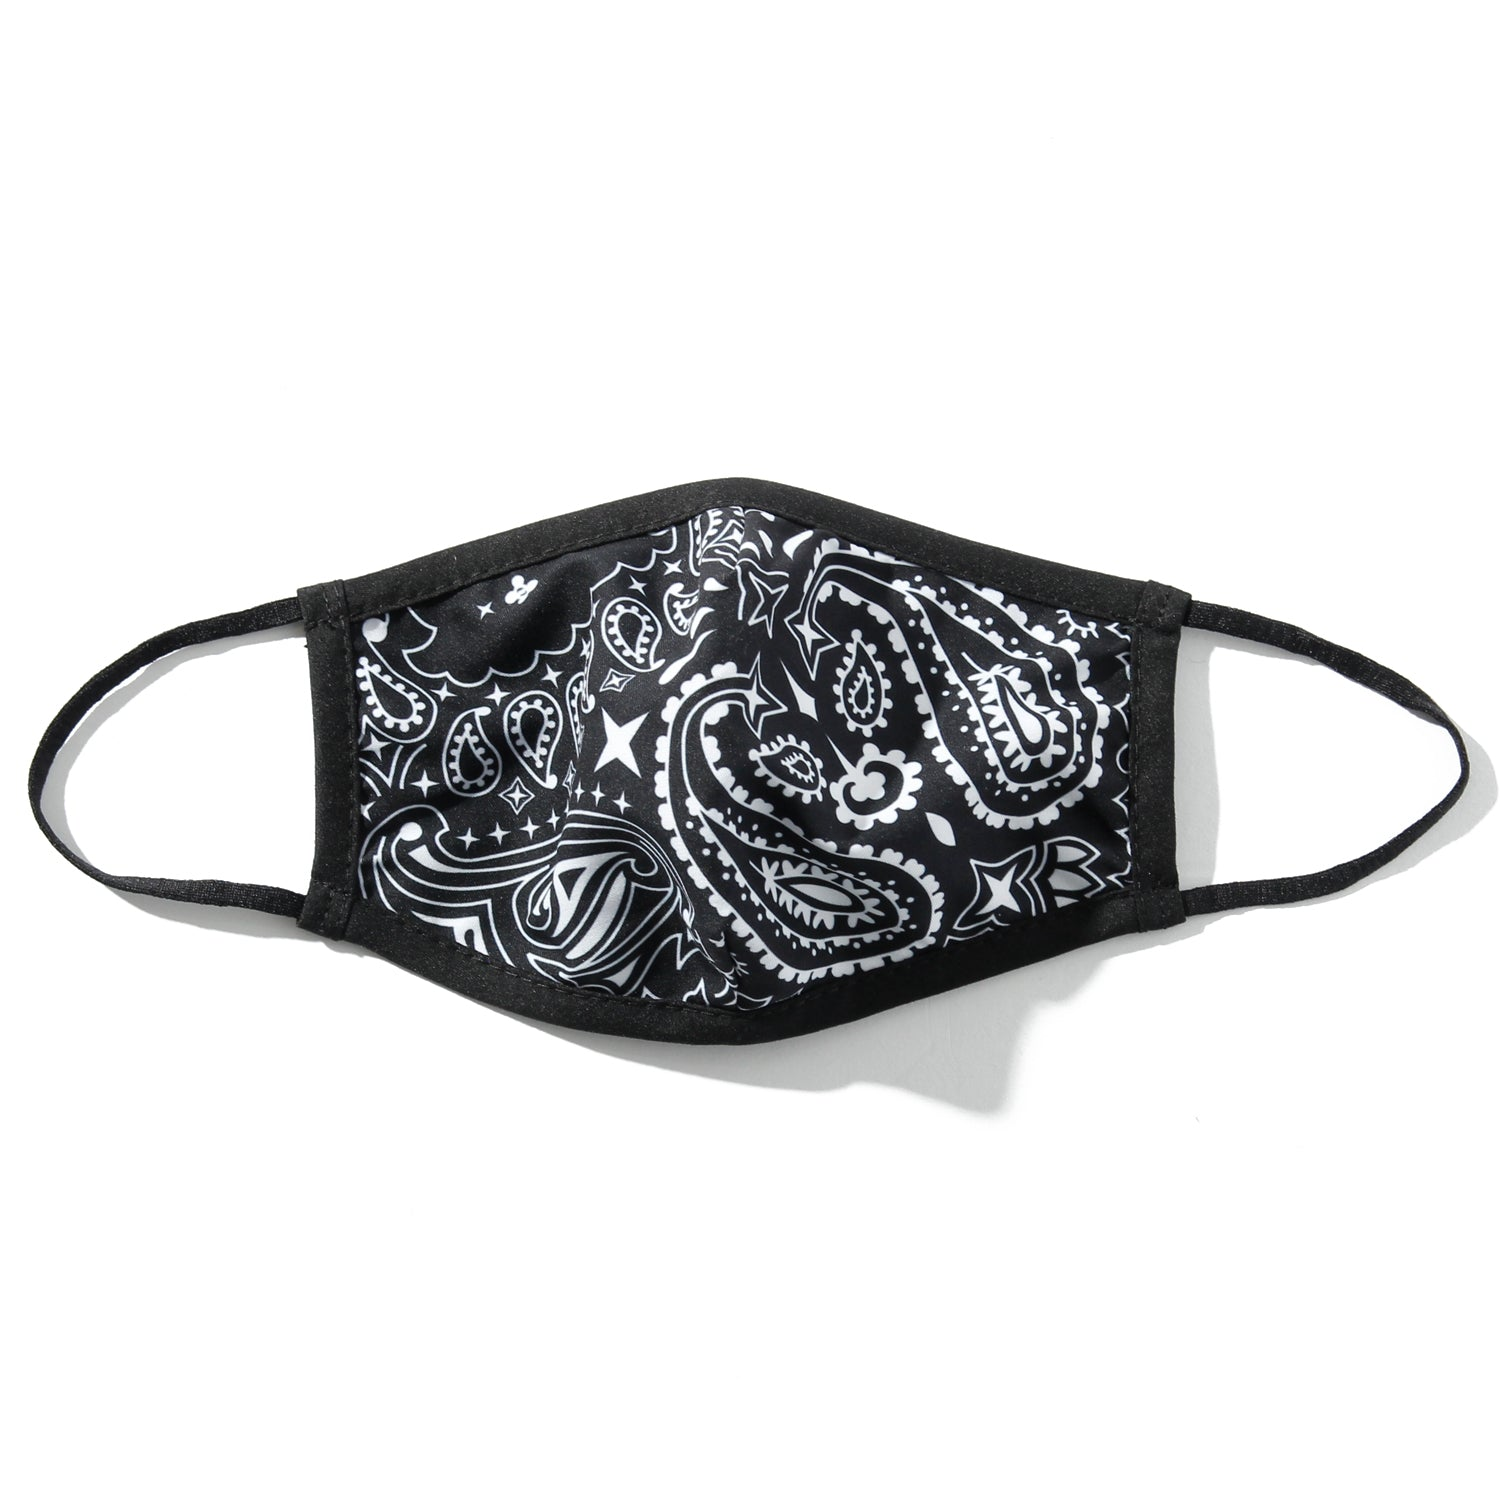 UNFECTION PAISLEY MASK